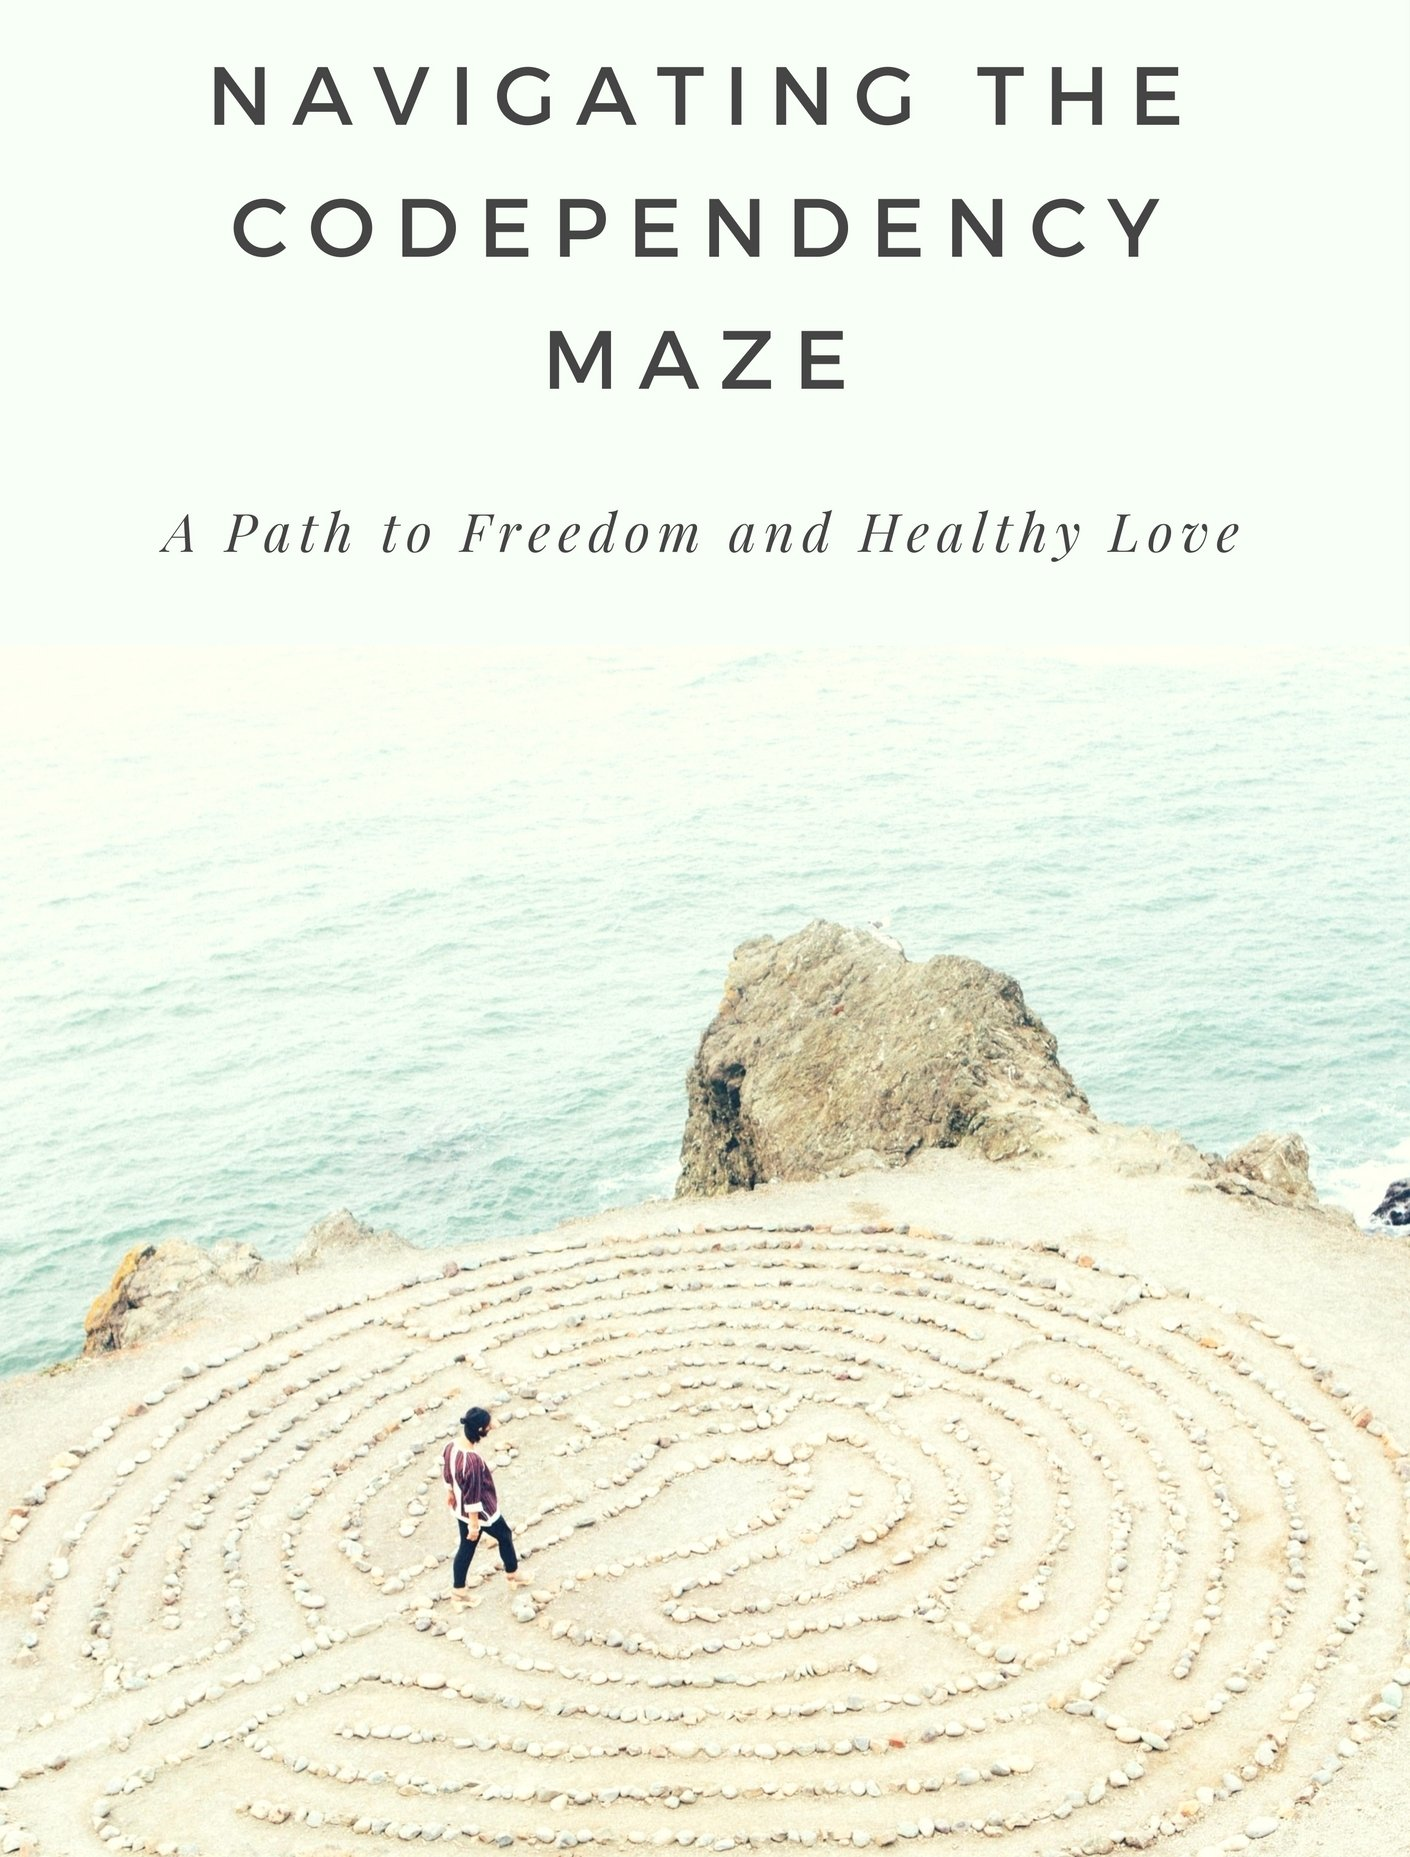 Recovery from Codependency self-help book